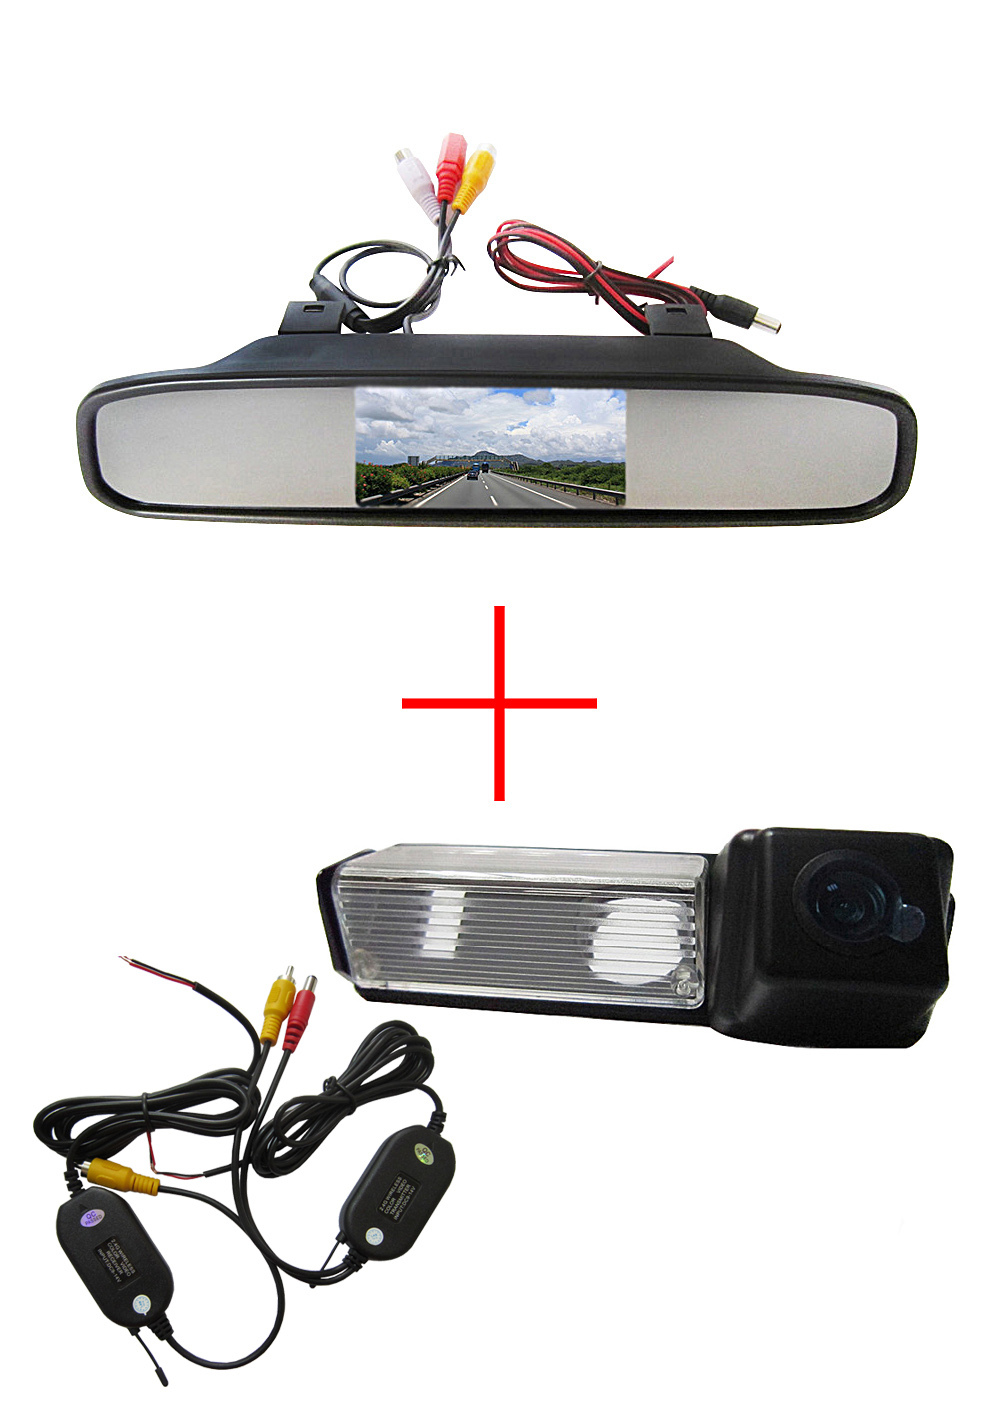 Wireless Color Car Rear view Camera for Mitsubishi Dakar Challenger Grandis Nativa Pajero Sport+4.3 Inch rearview Mirror Monitor  2003 2008 year for mitsubishi pajero sport montero sport nativa pajero dakar led tail lamp rear light all smoke black color sn